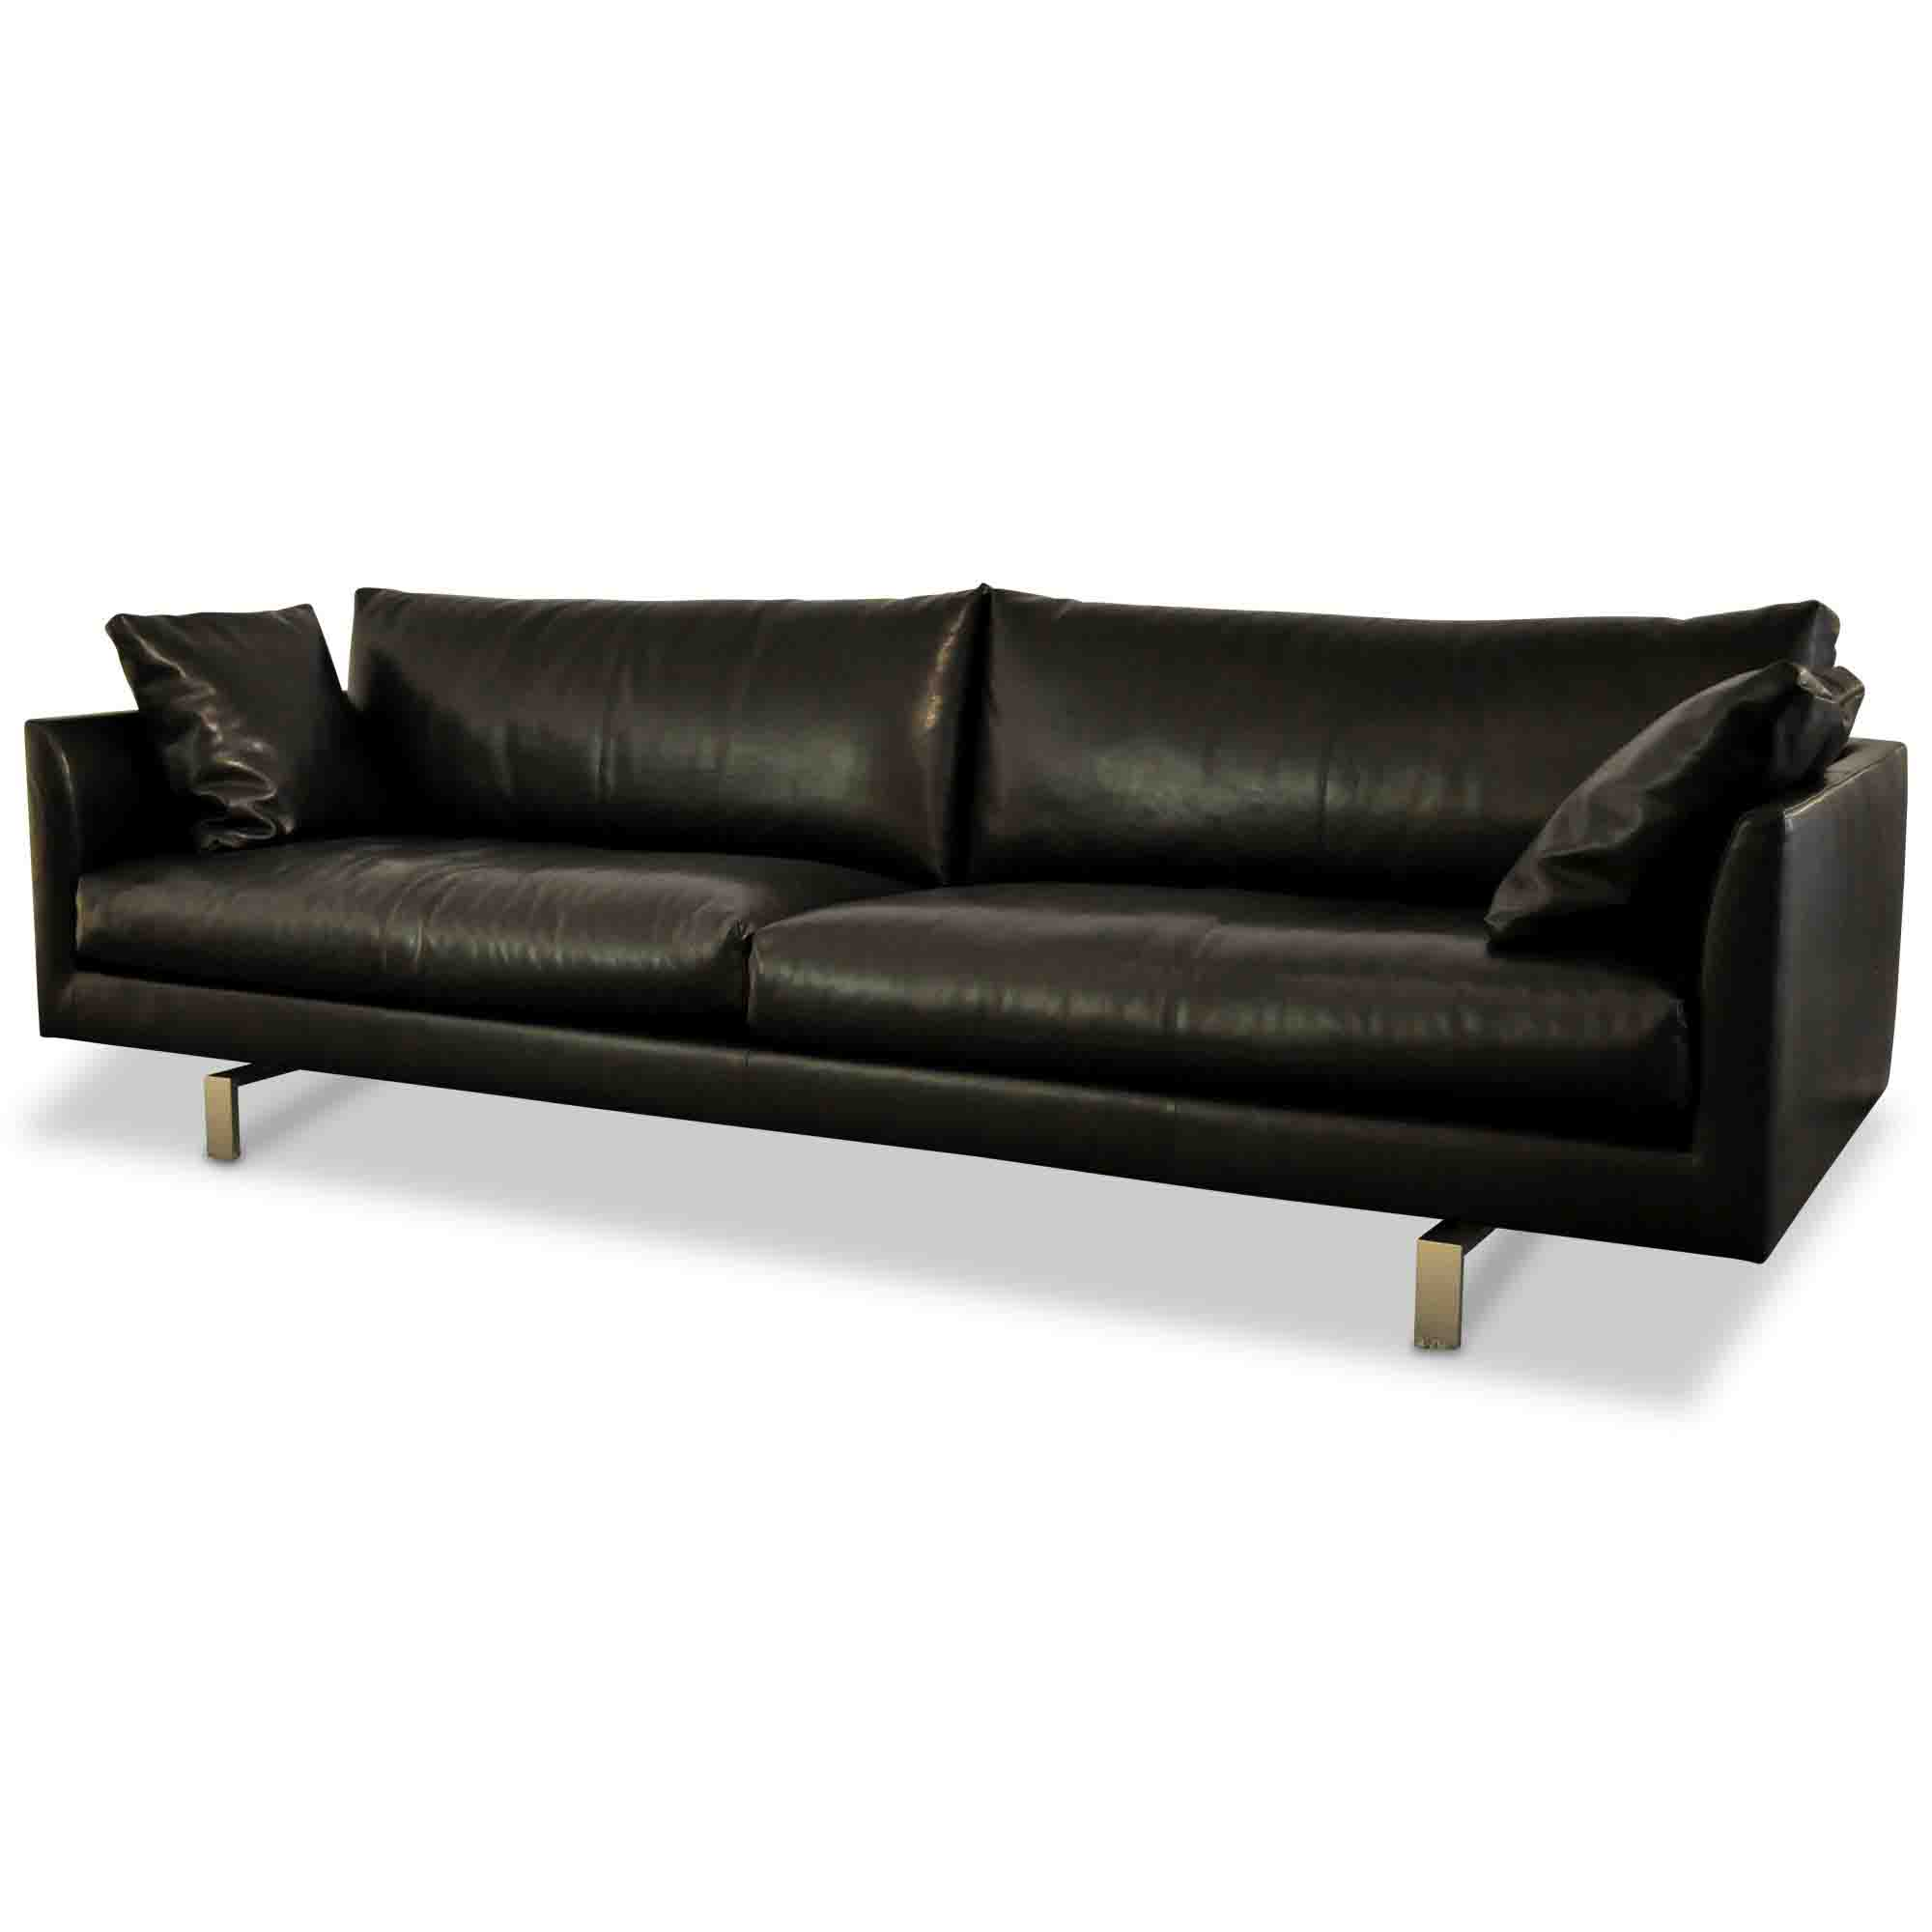 montis designer sofa axel leder stahl schwarz edelstahl ebay. Black Bedroom Furniture Sets. Home Design Ideas